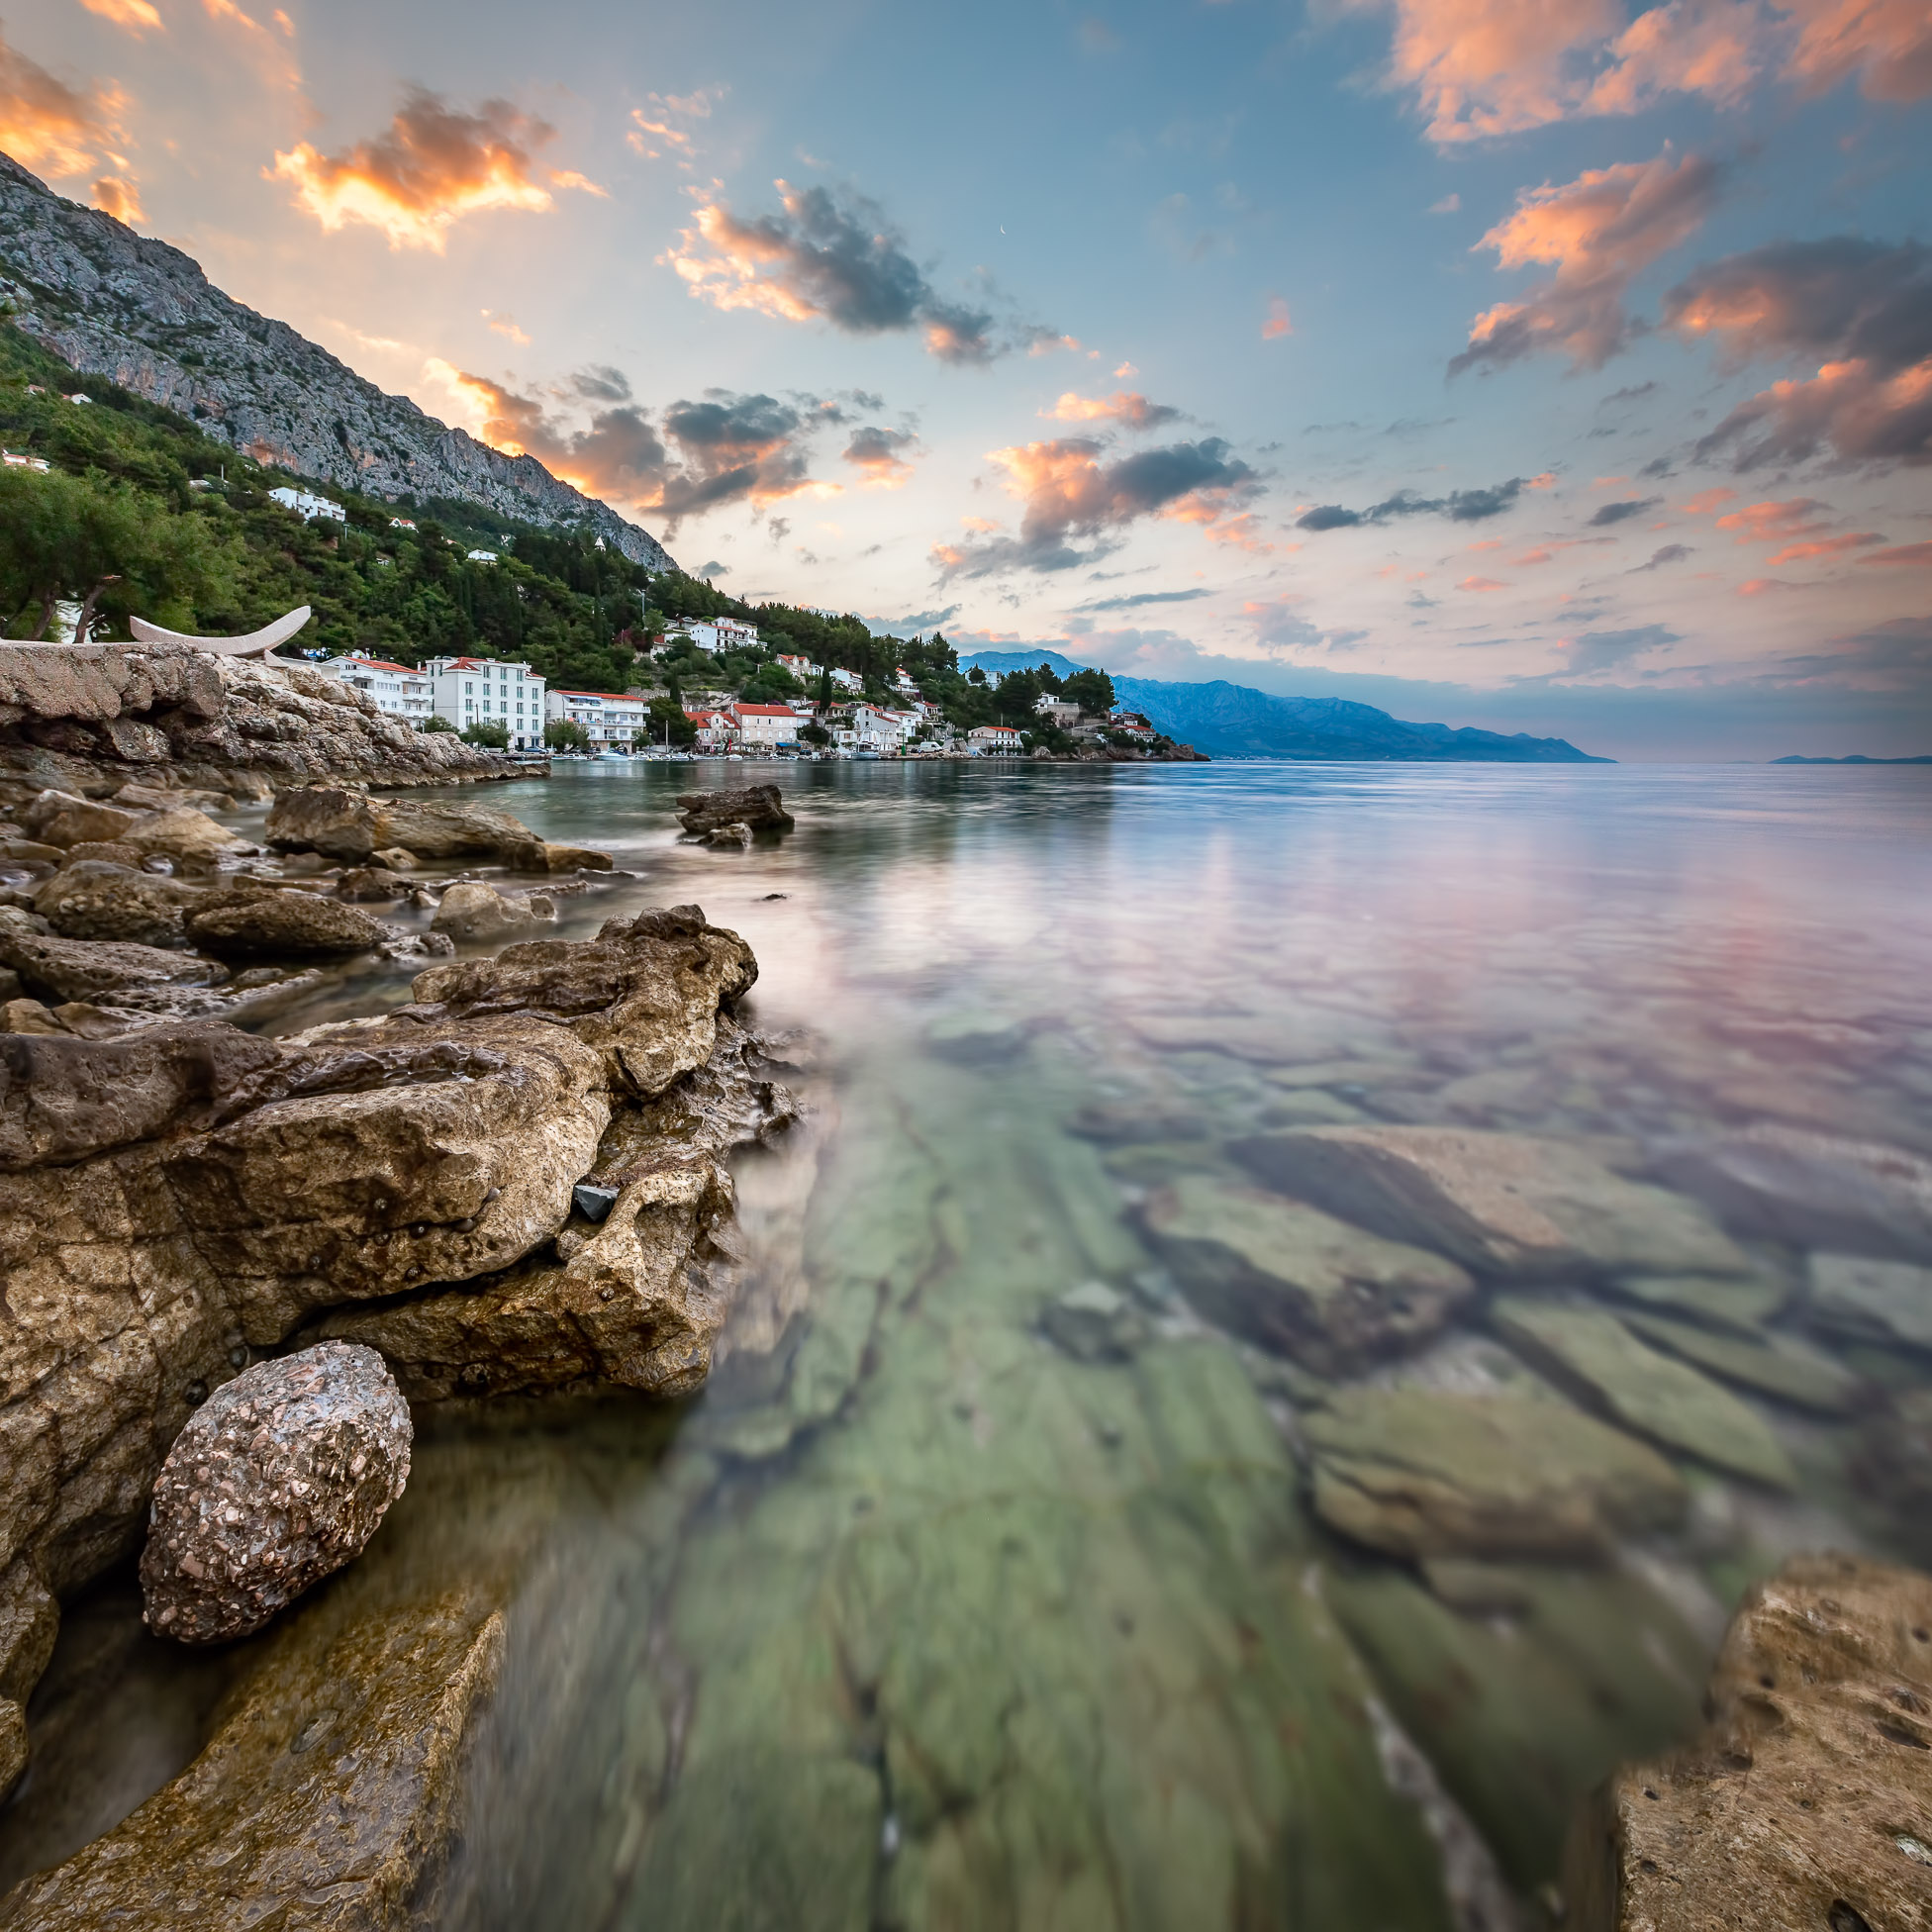 Sunrise on Rocky Beach and Small Village near Omis, Dalmatia, Croatia